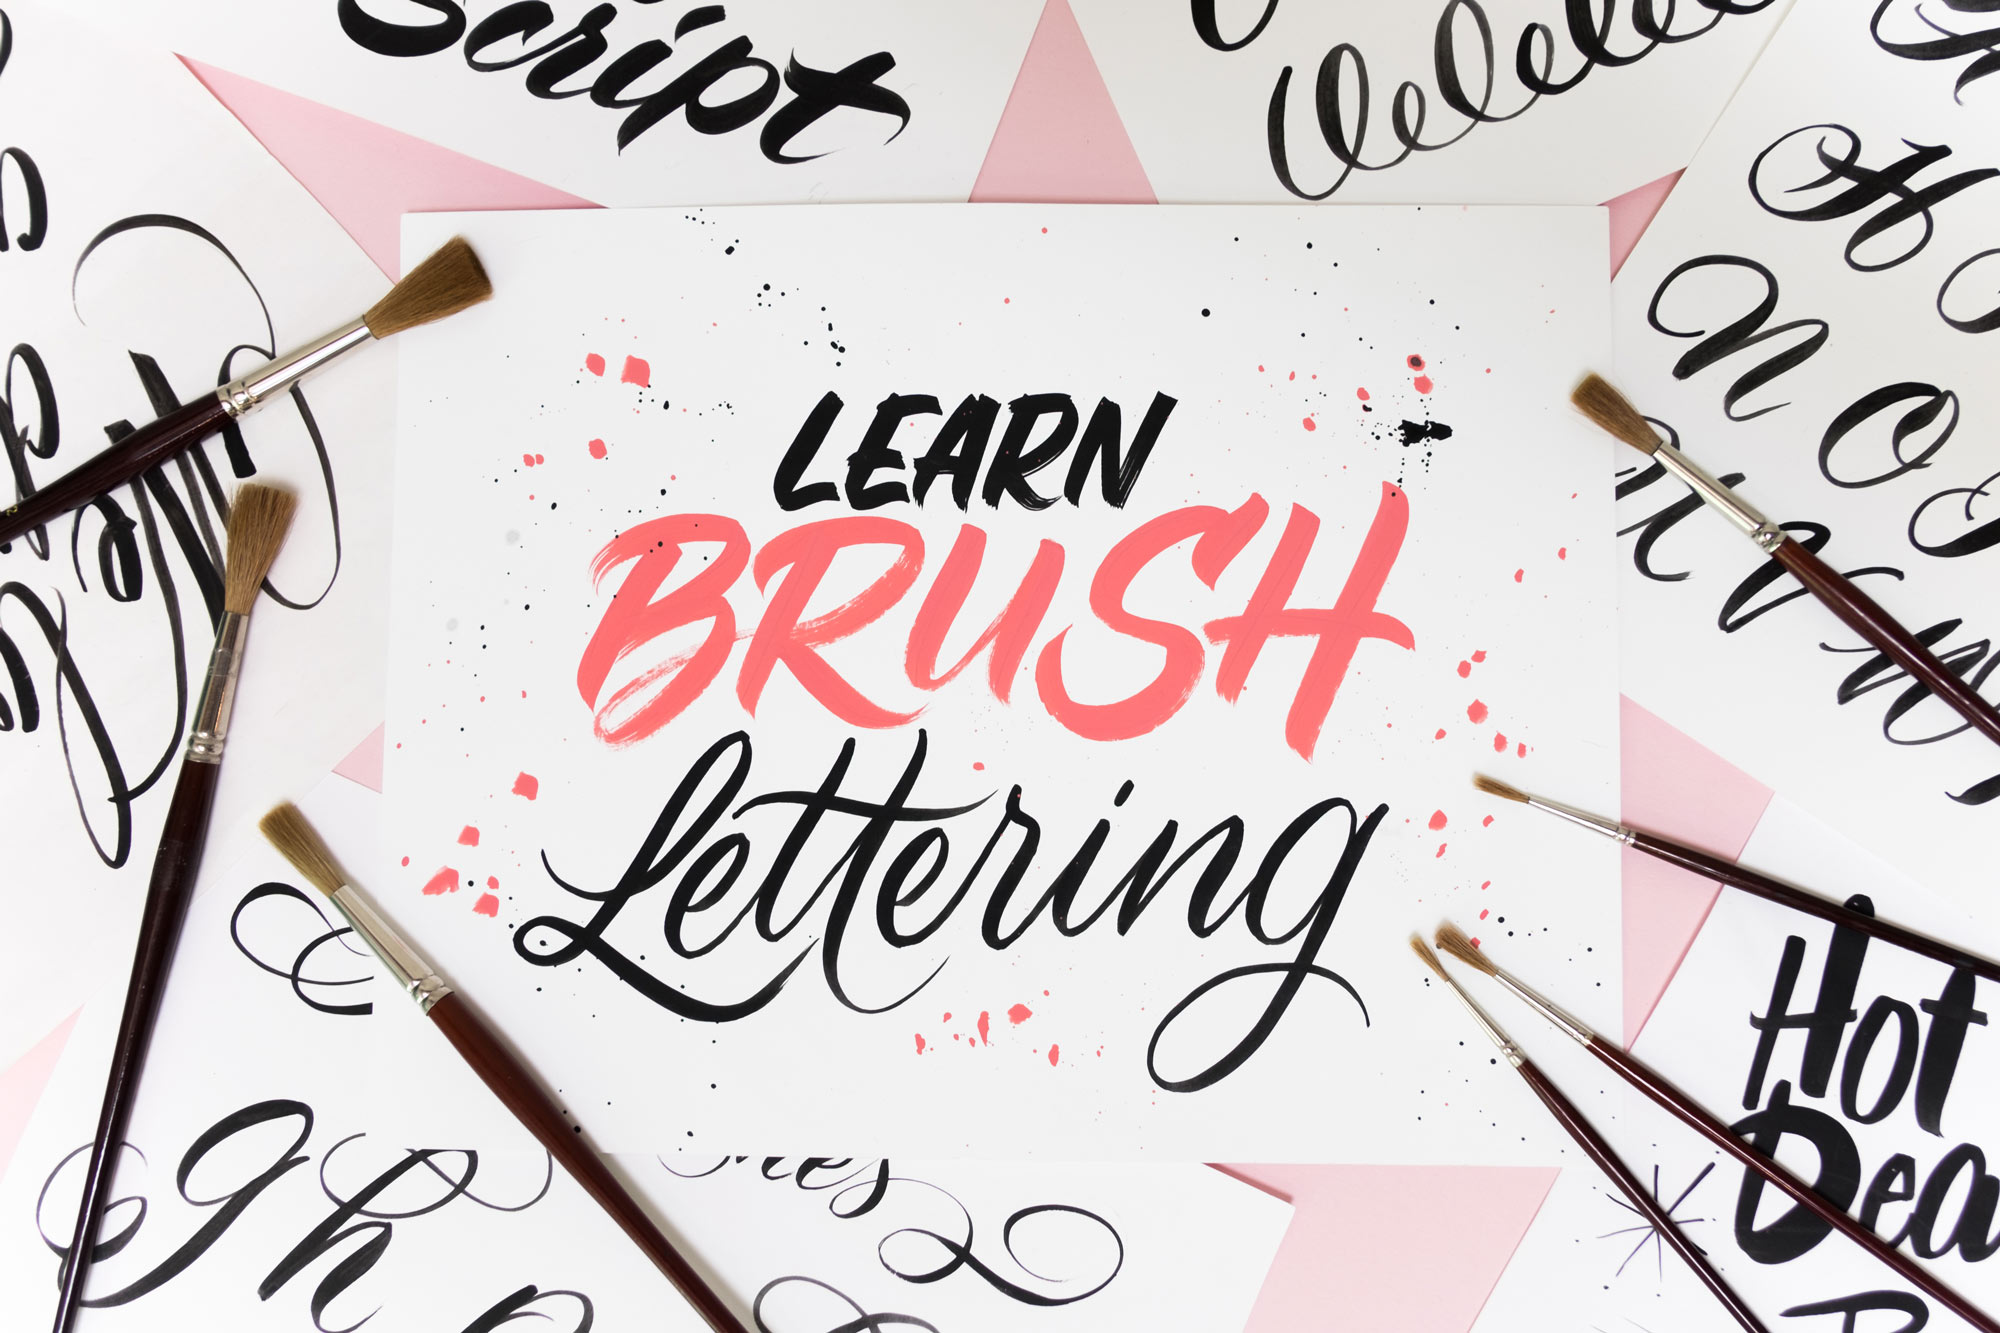 Learn Brush Lettering Online Course